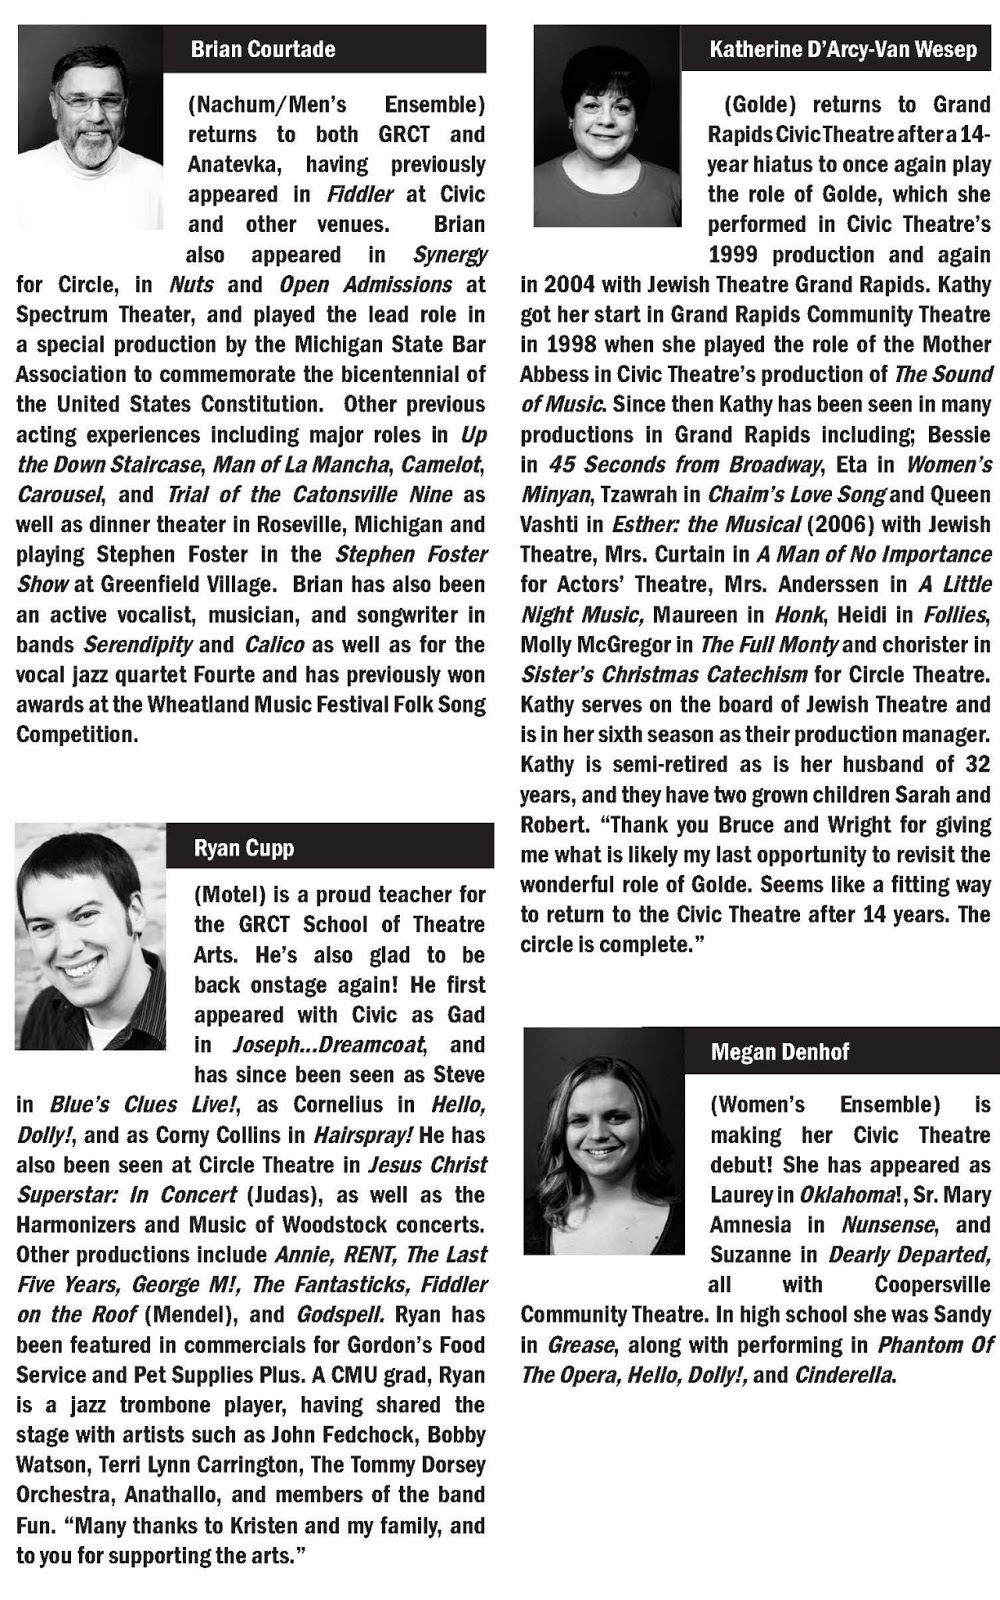 Fiddler On The Roof Cast Bios